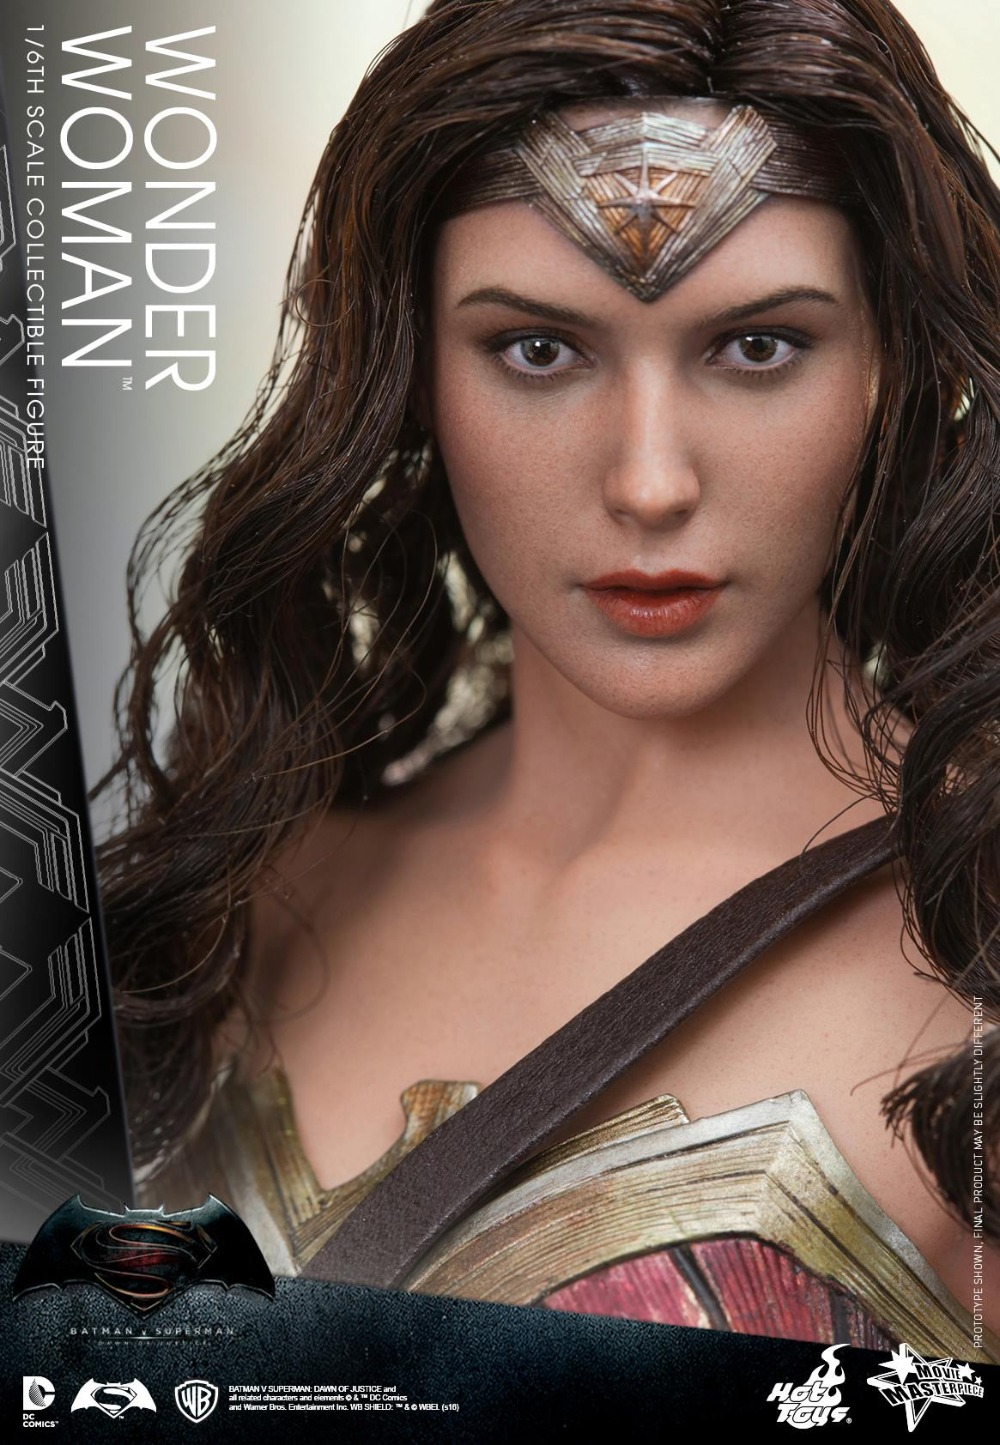 12 HOT TOYS HOTTOYS HT 1/6 MMS359 Batman Vs Superman Dawn of Justice Wonder Woman Gal Gadot Collectible Action Figure Pre-order new hot 19 22cm justice league batman v superman dawn of justice wonder woman action figure toys collection christmas gift doll